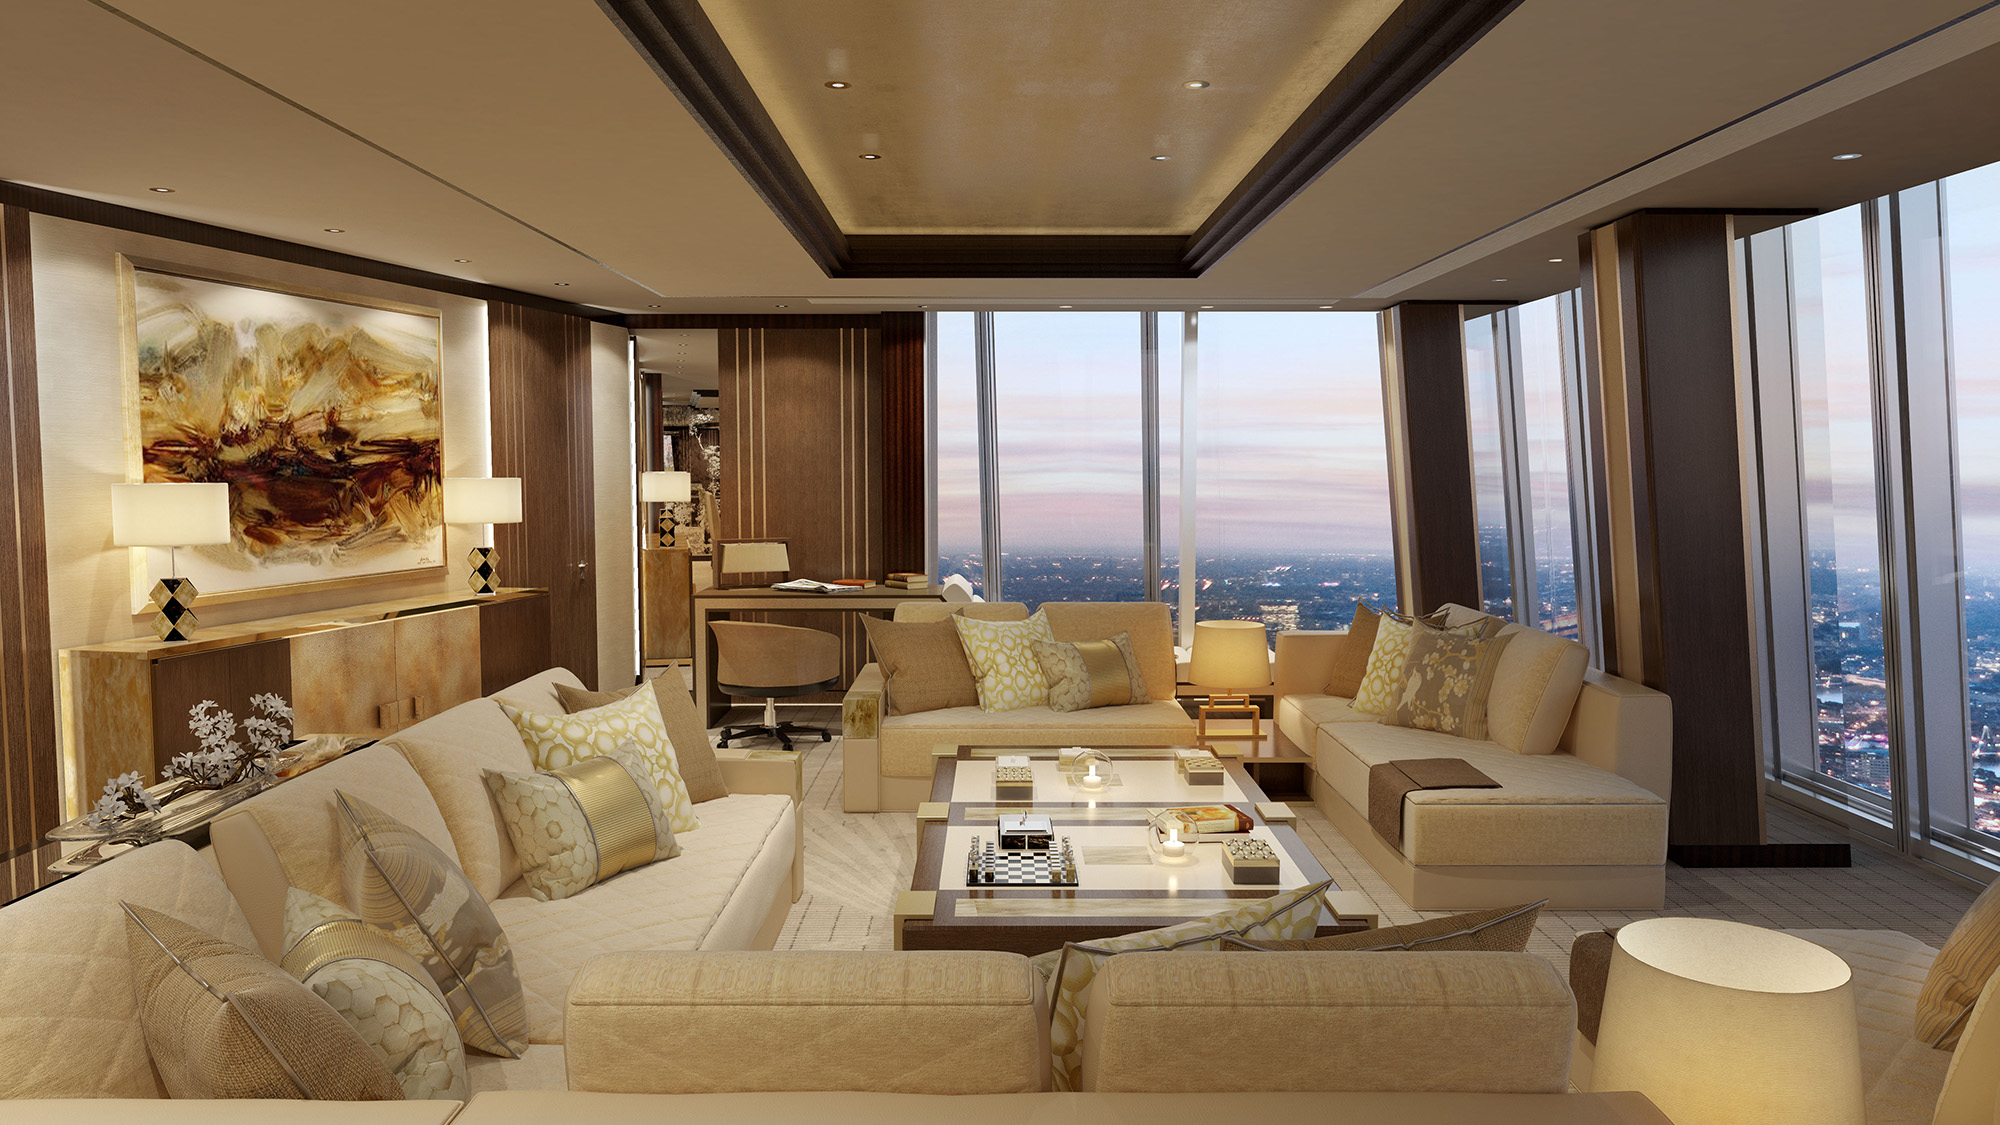 London S Shangri La At The Shard Adds New Suites Travel Weekly